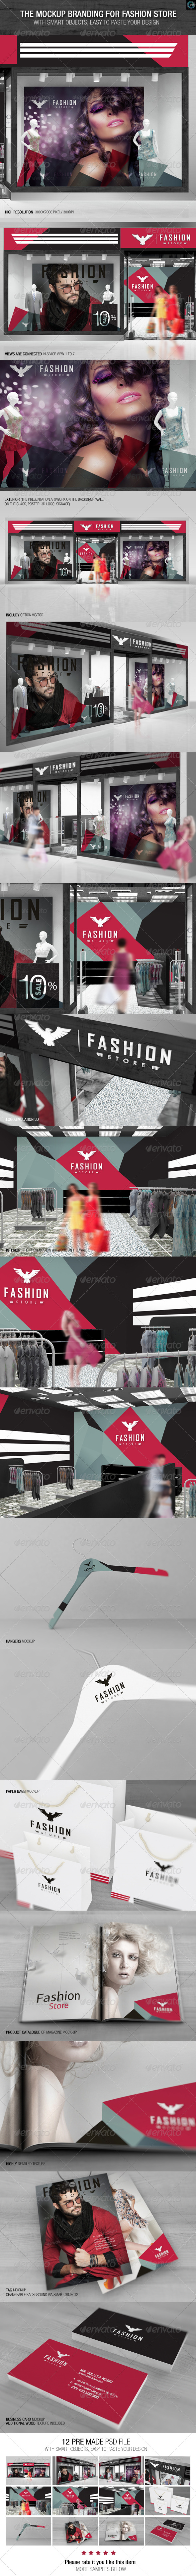 The Mockup Branding for Fashion Store